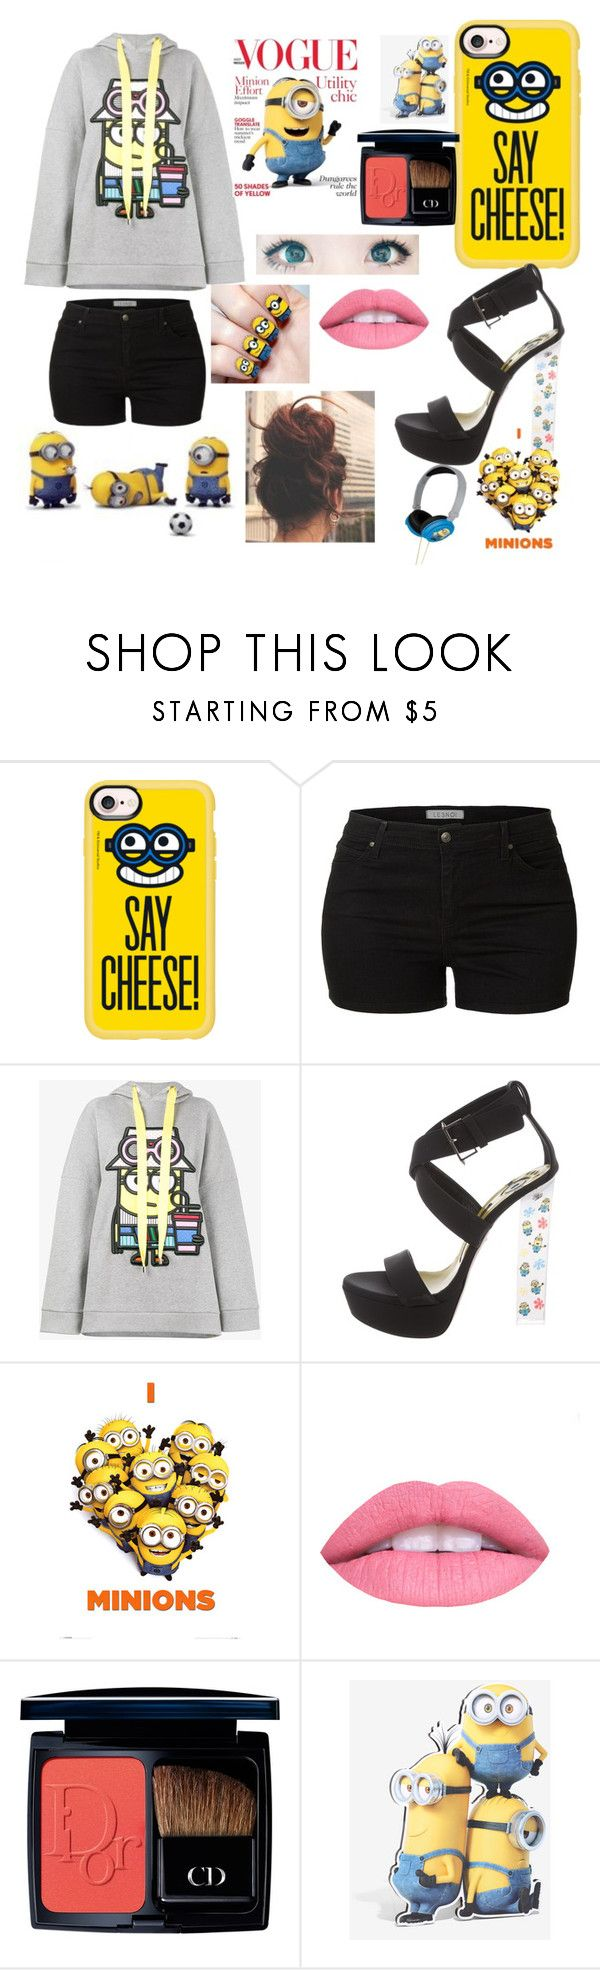 """is it minion??#so.cute.na?¿😂"" by khushurao ❤ liked on Polyvore featuring Ultimate, Casetify, LE3NO, Mira Mikati, Ruthie Davis, Despicable Me, L.A. Girl and Christian Dior"